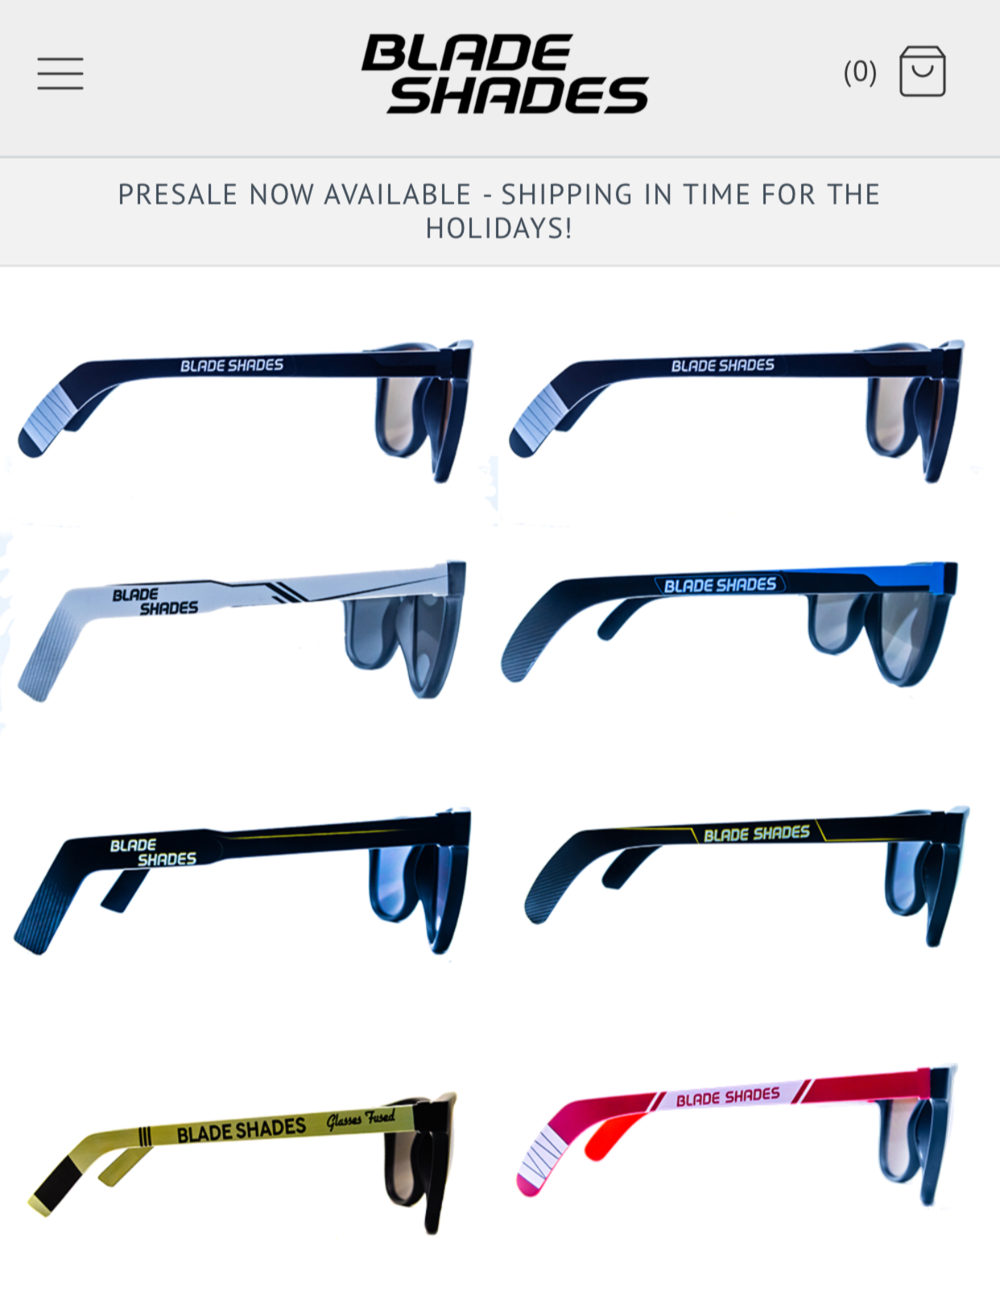 See the Blade Shades' full line up!